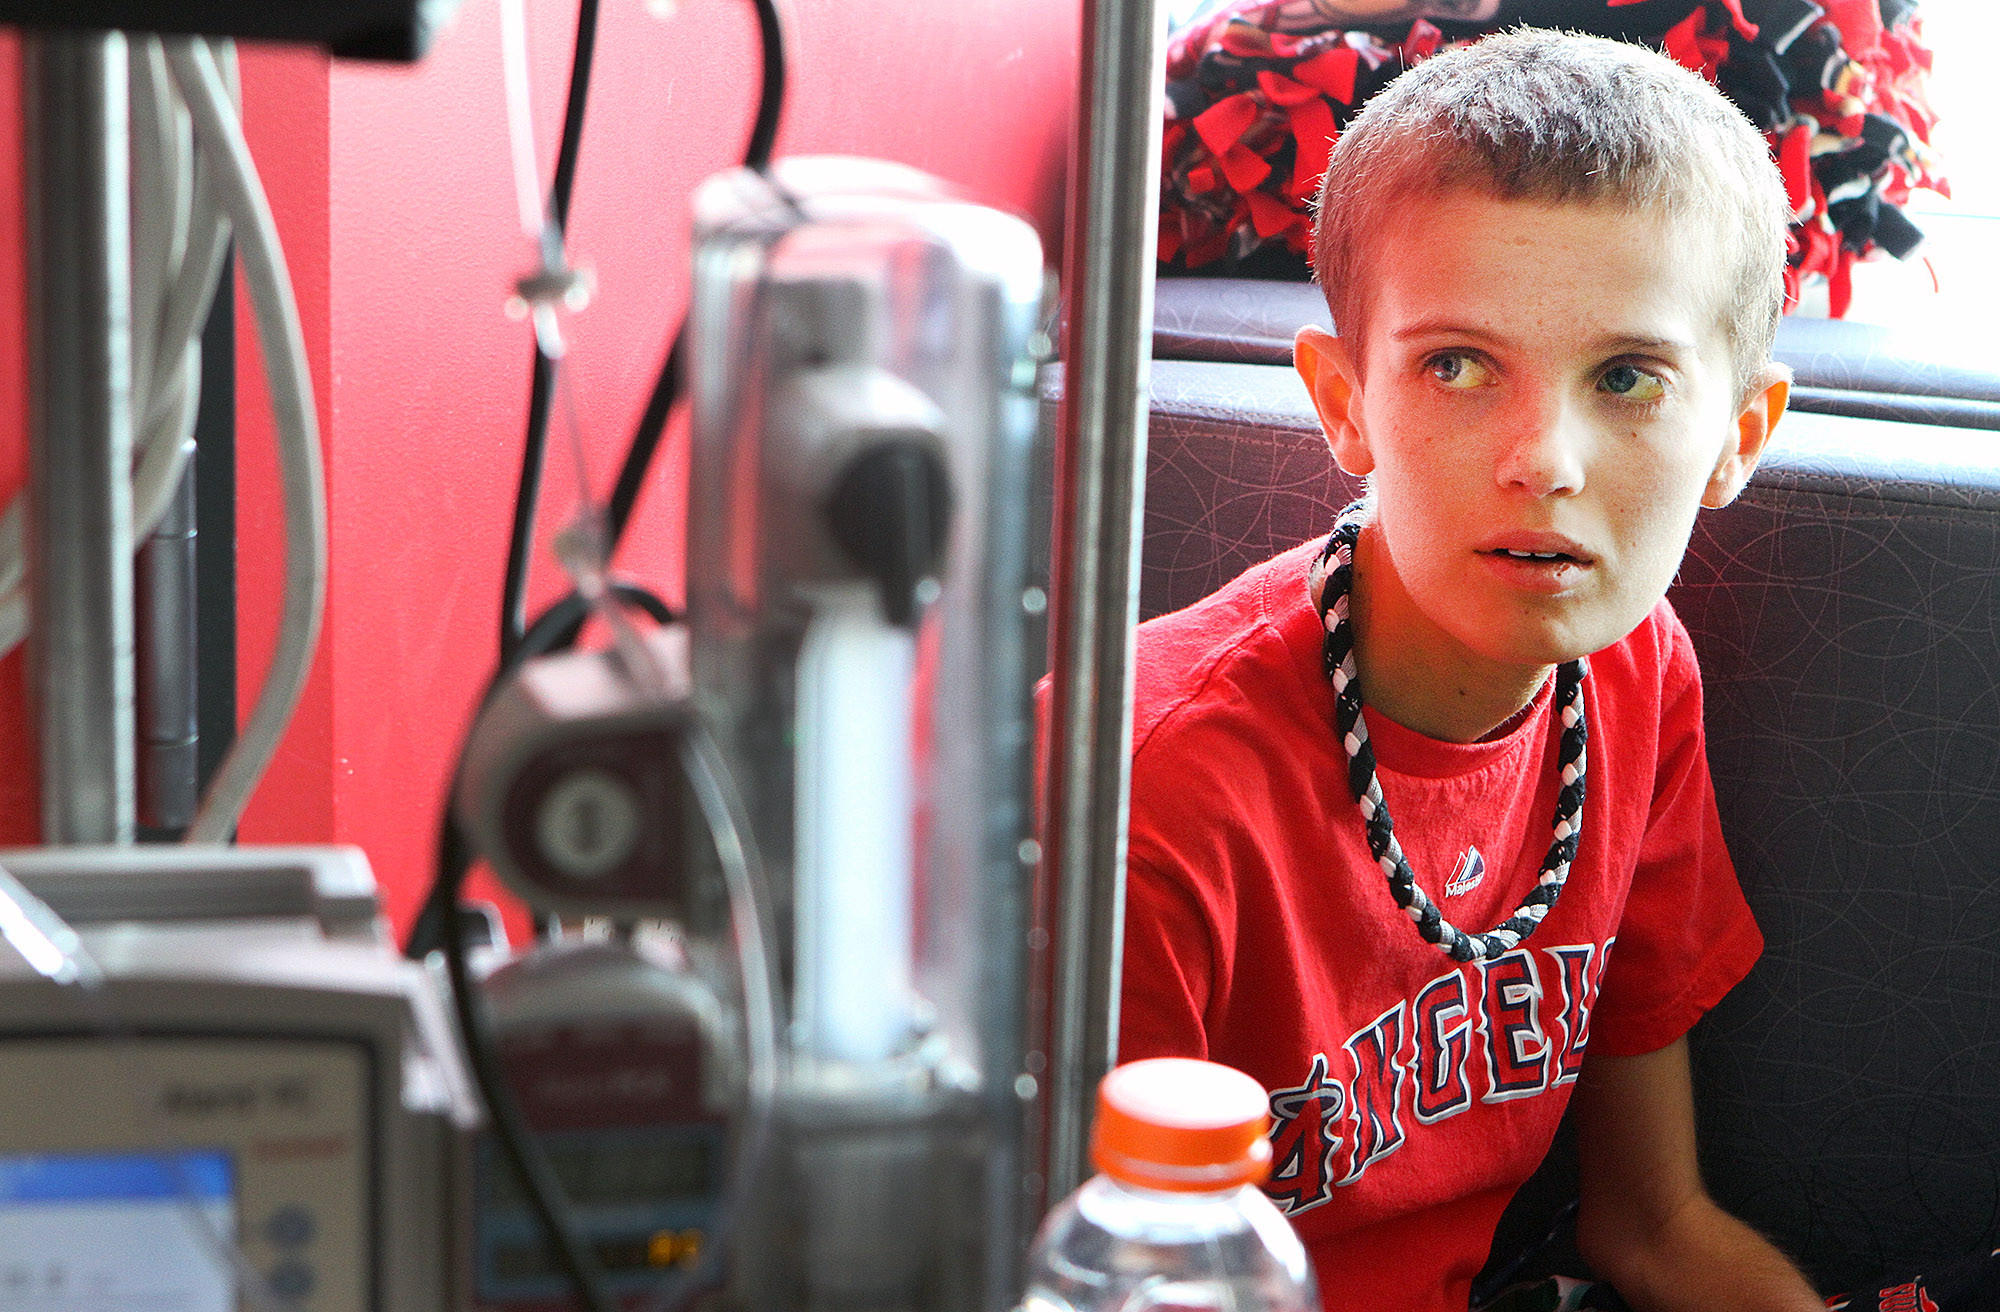 Christopher Wilke, 12, of Burbank, is at Children's Hospital Los Angeles for treatment of a rare disease he is battling on Monday, March 3, 2014. The disease is a a bile duct cancer that is rare for adults, and nearly unheard of for children.